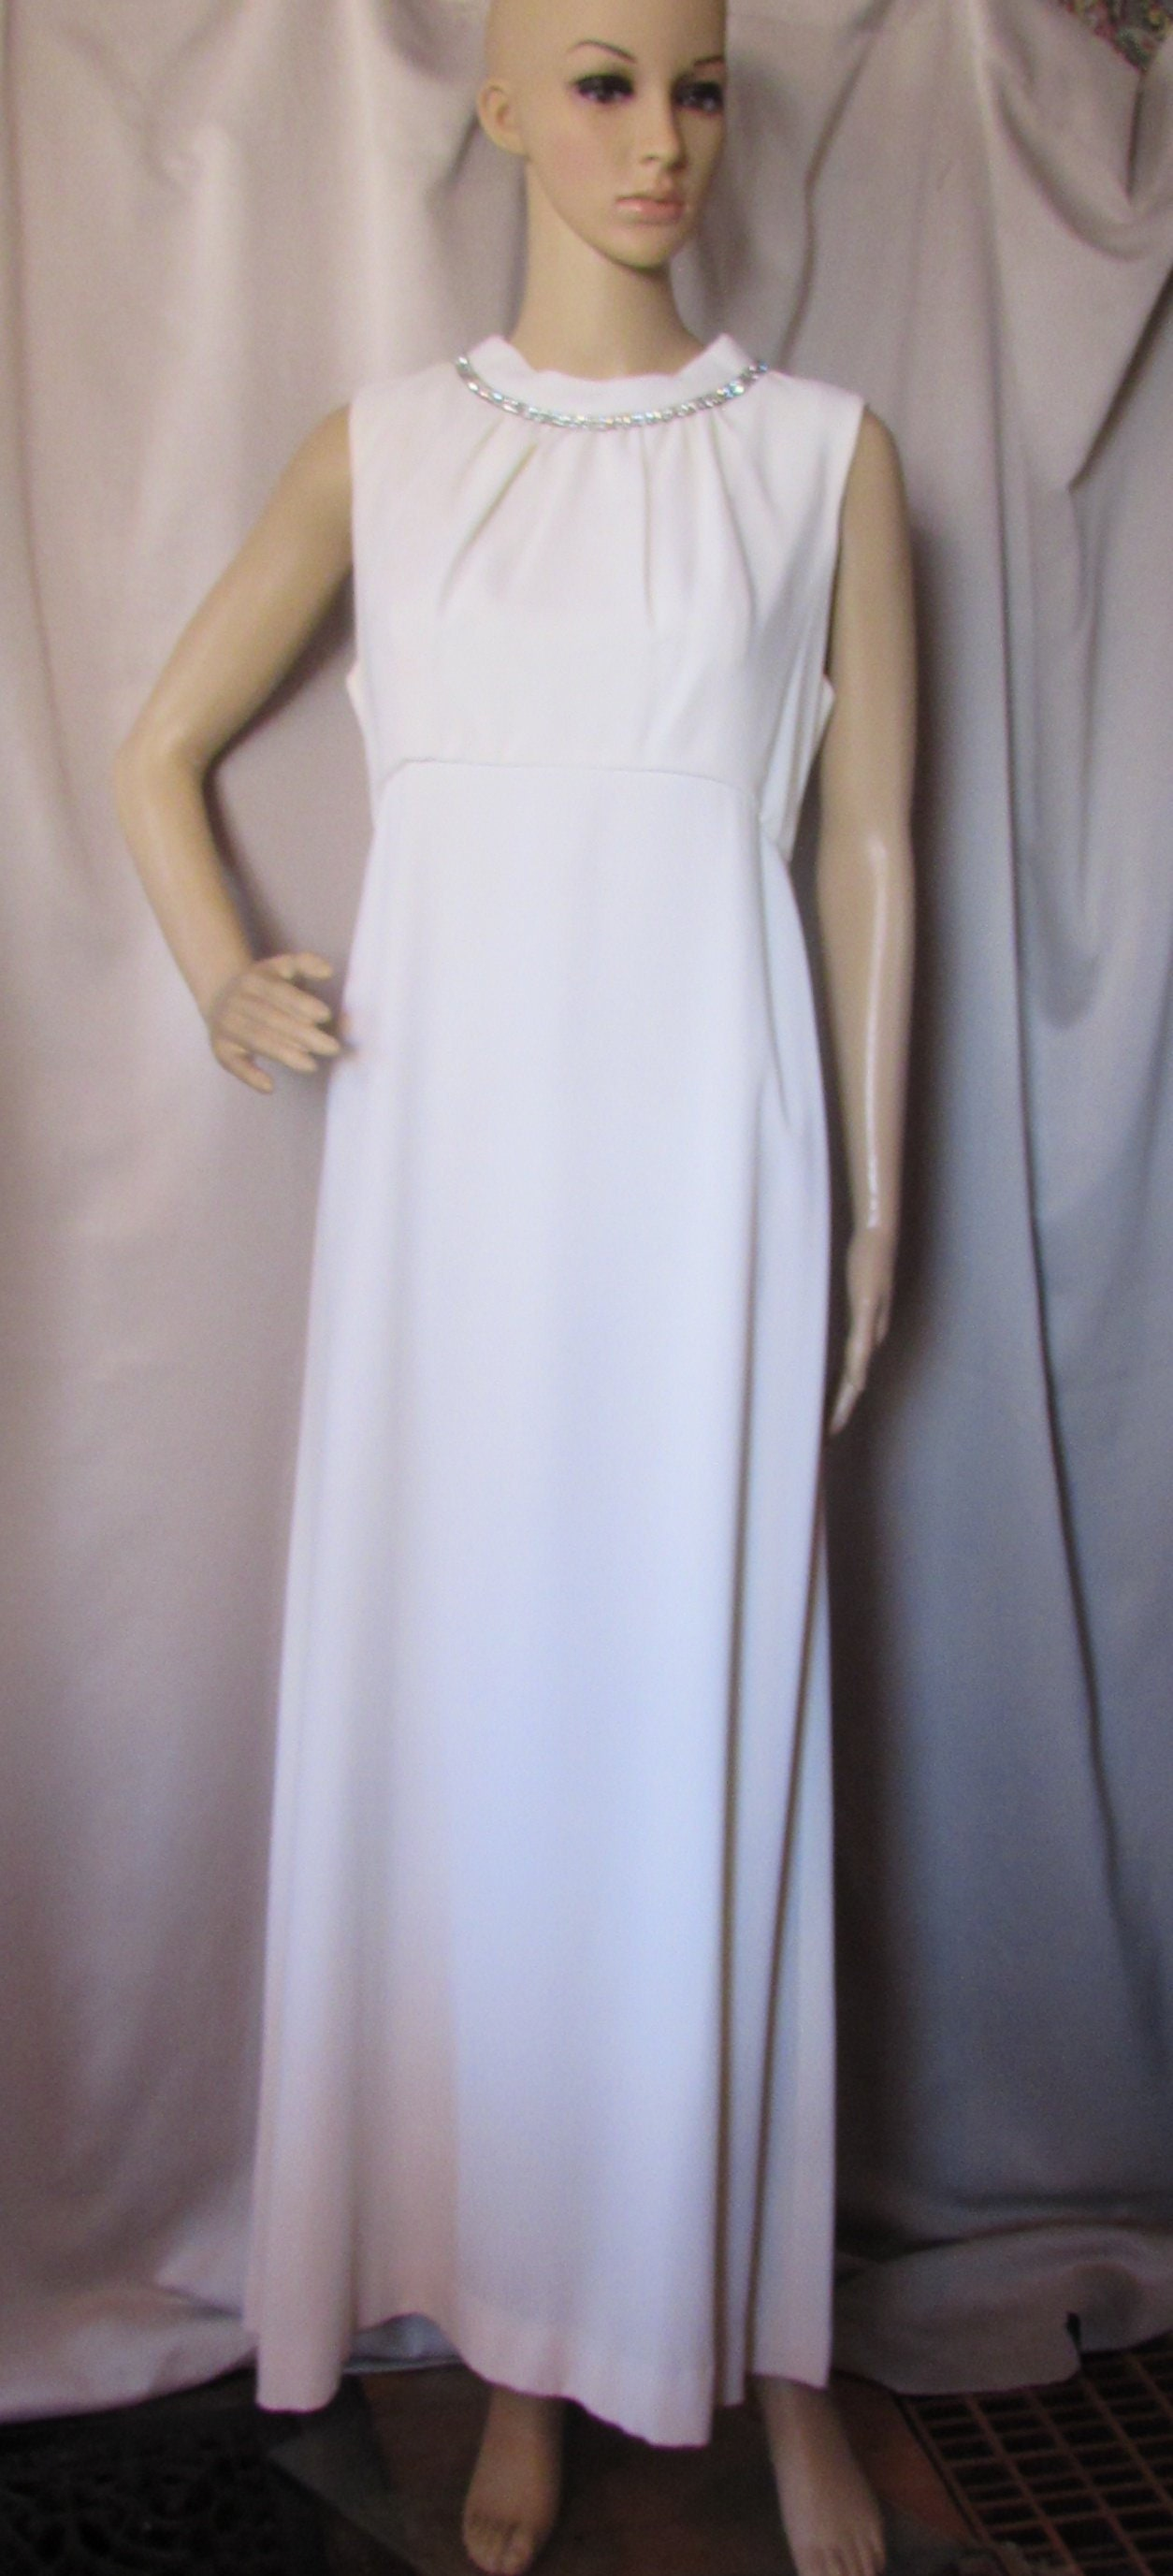 4c5a516c1afe6 Long Evening Gown Winter White Crepe Grecian Style Rhinestone | Etsy